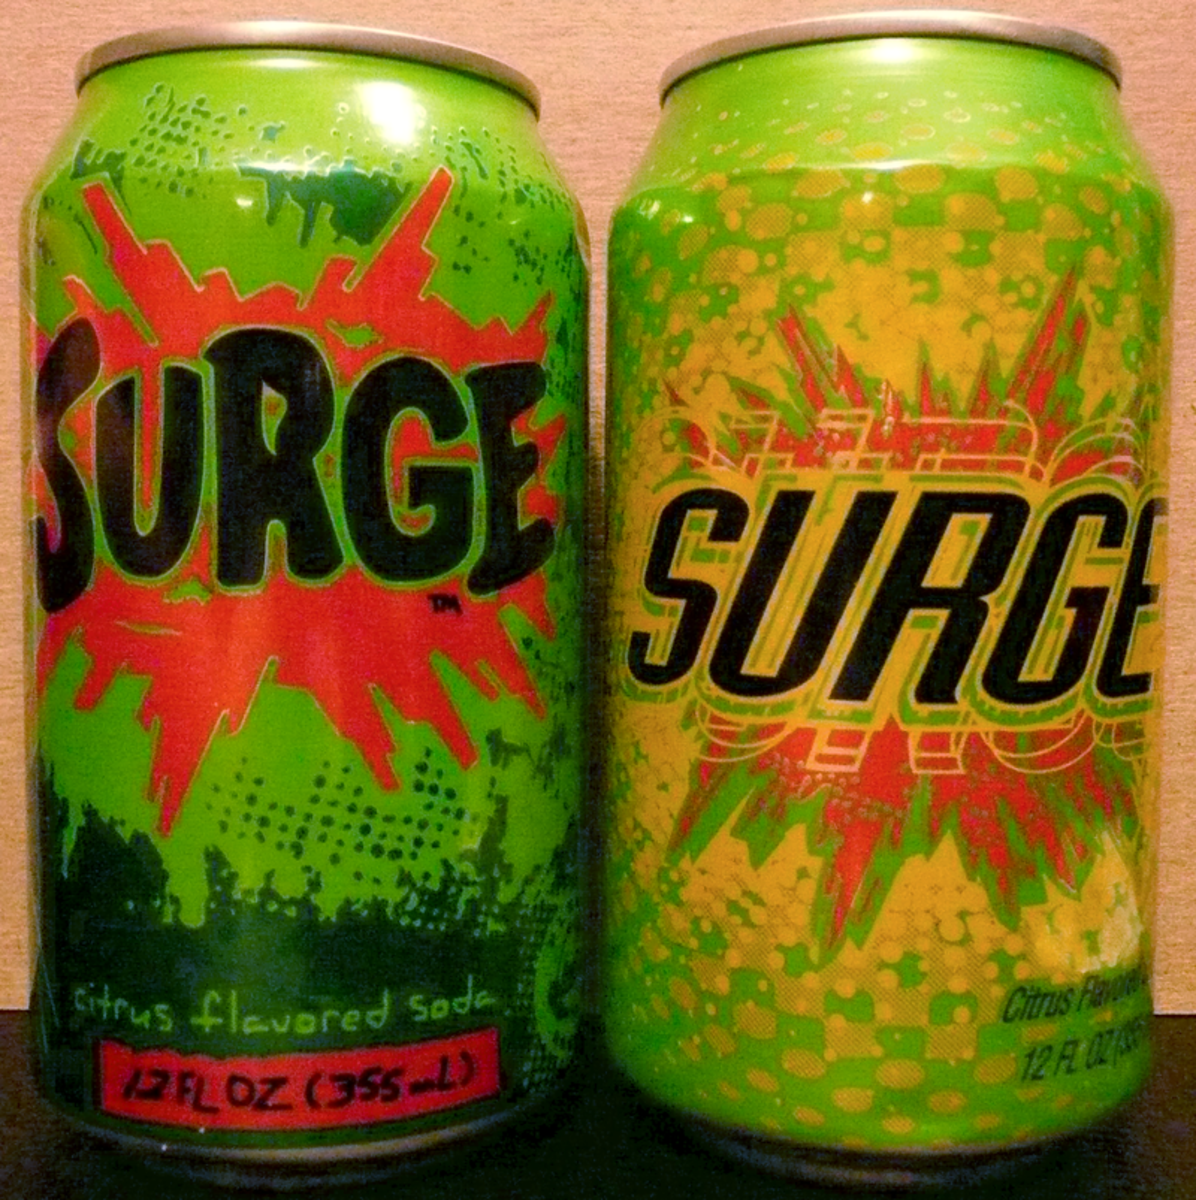 Surge is a citrus-flavored soda like Mountain Dew.